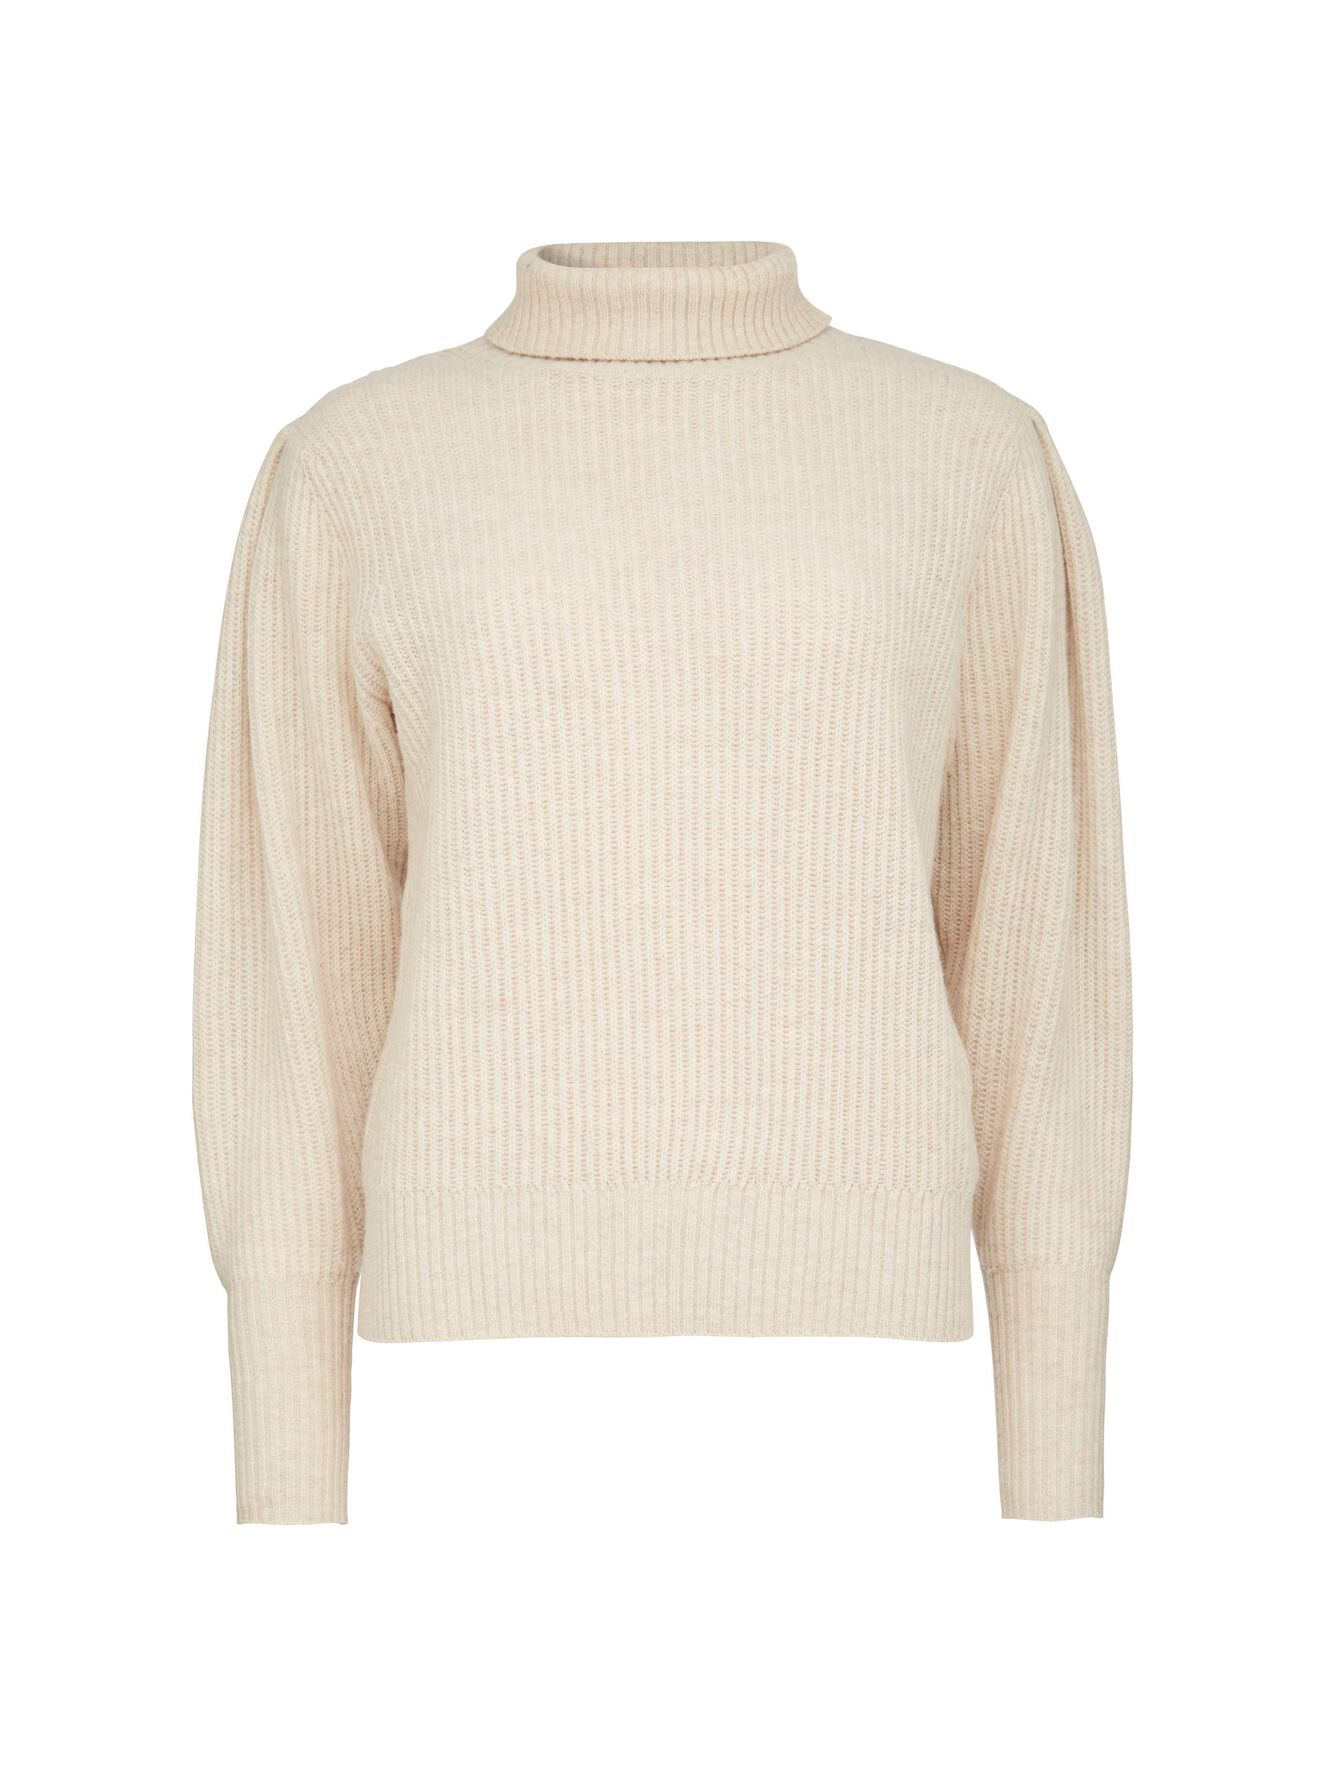 GLEBA SWEATER in Almond from Tiger of Sweden